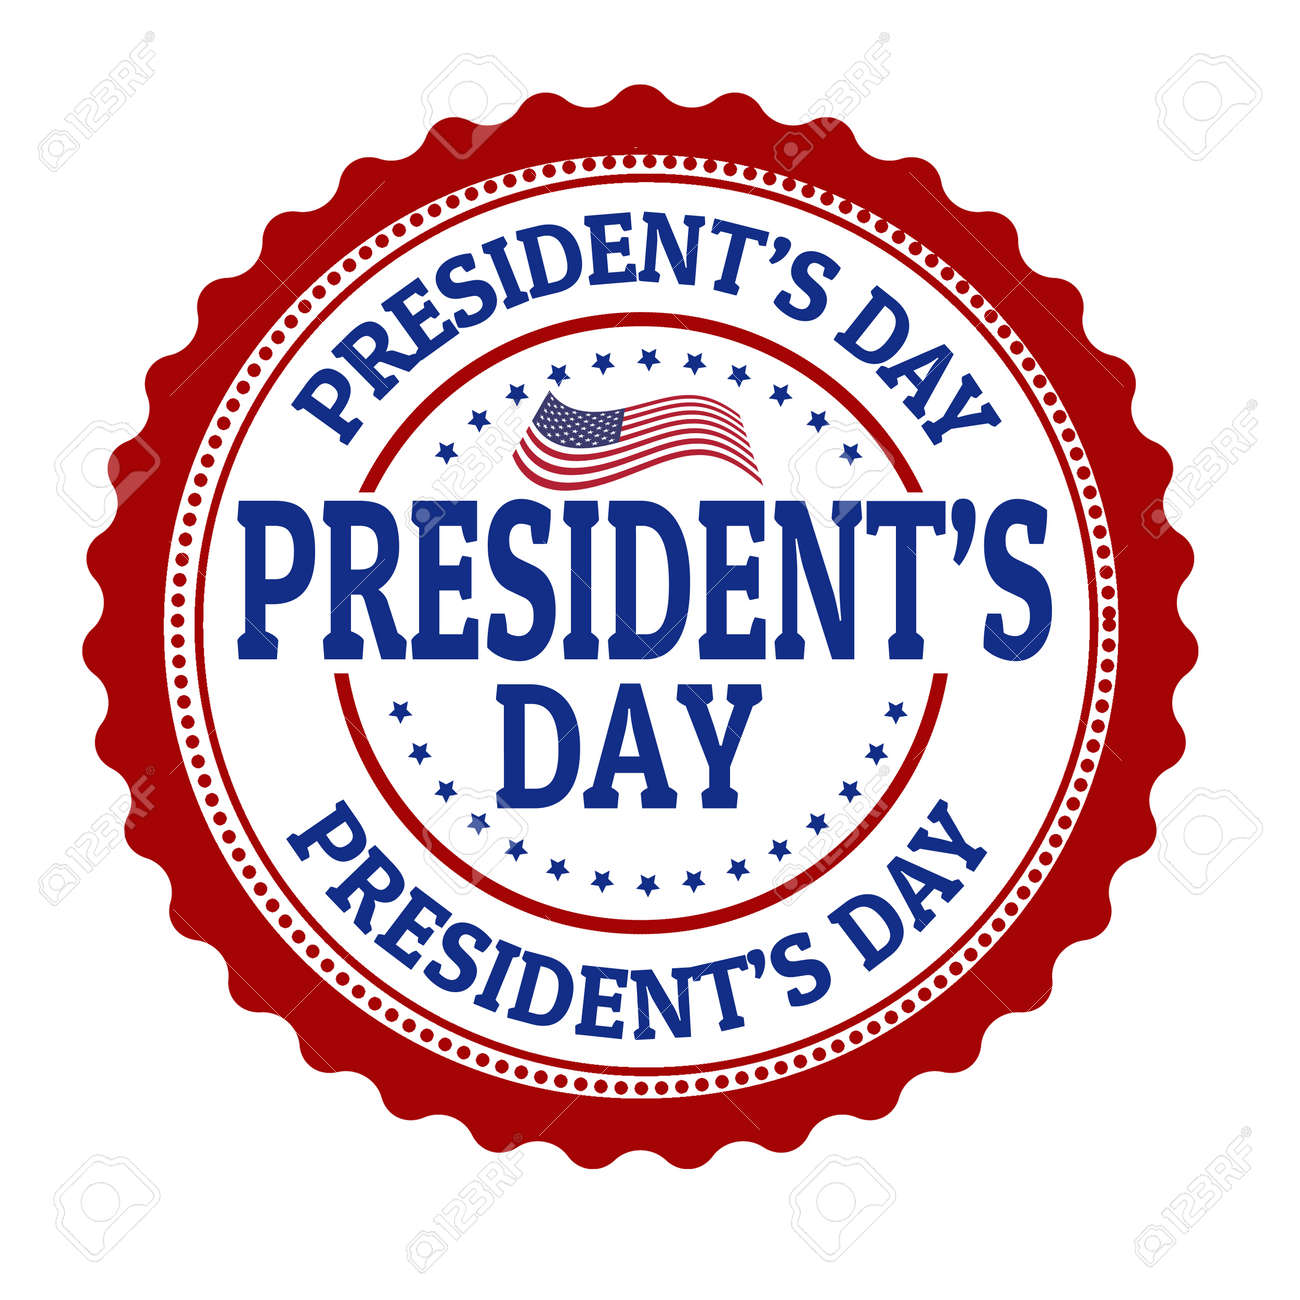 presidents day stamp royalty free cliparts vectors and stock